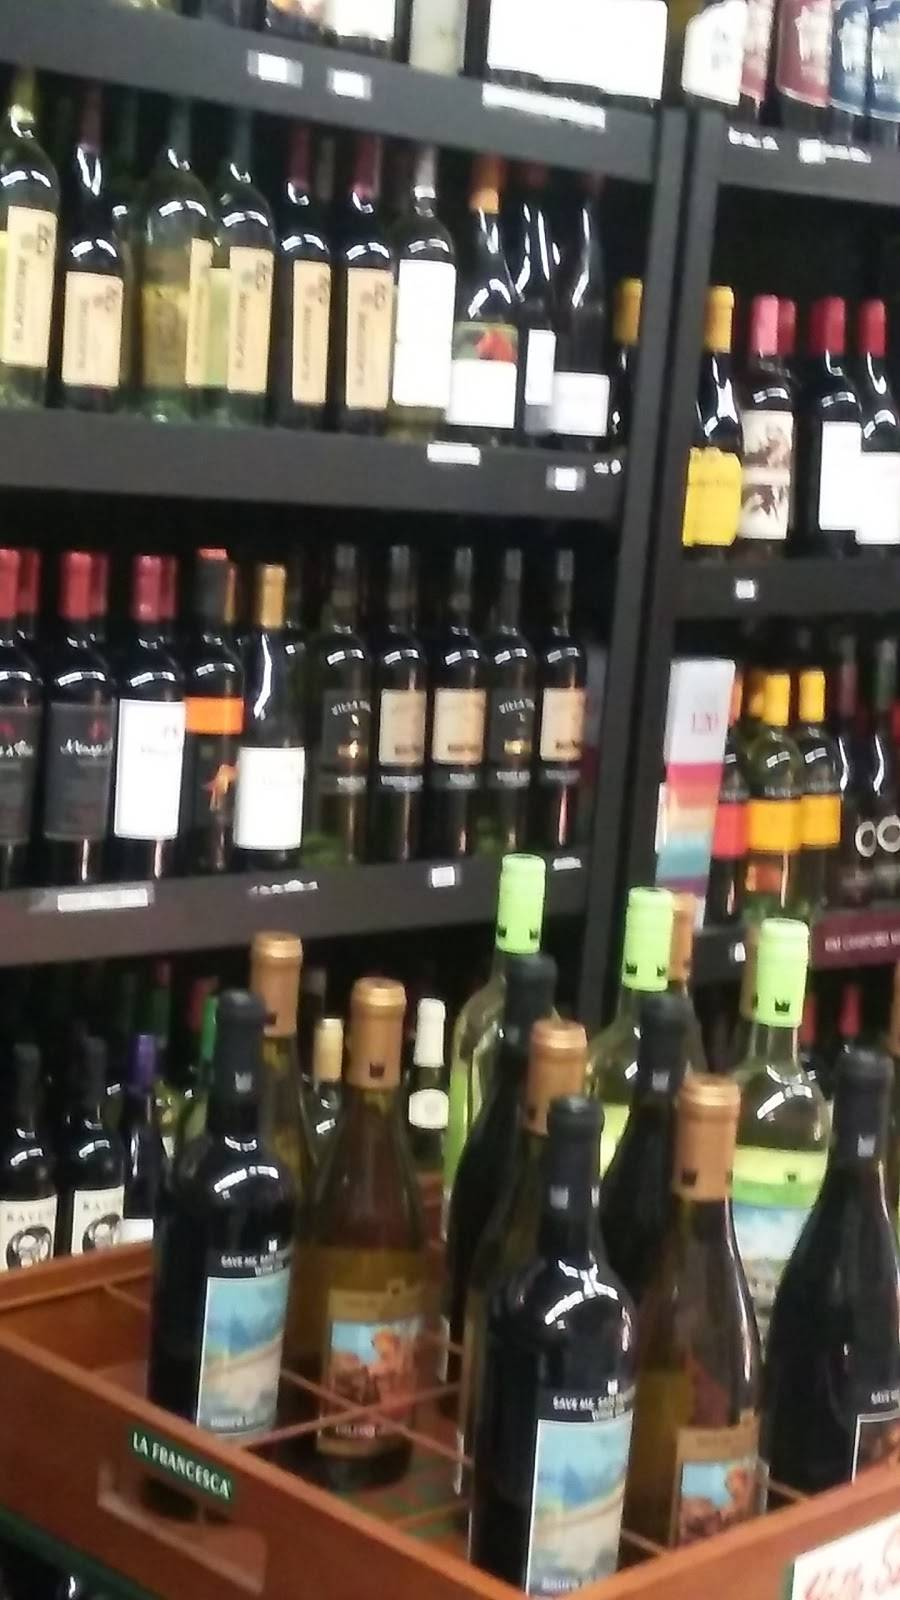 Sassos Liquors and Deli | meal delivery | 1038 Garden St, Hoboken, NJ 07030, USA | 2012179562 OR +1 201-217-9562